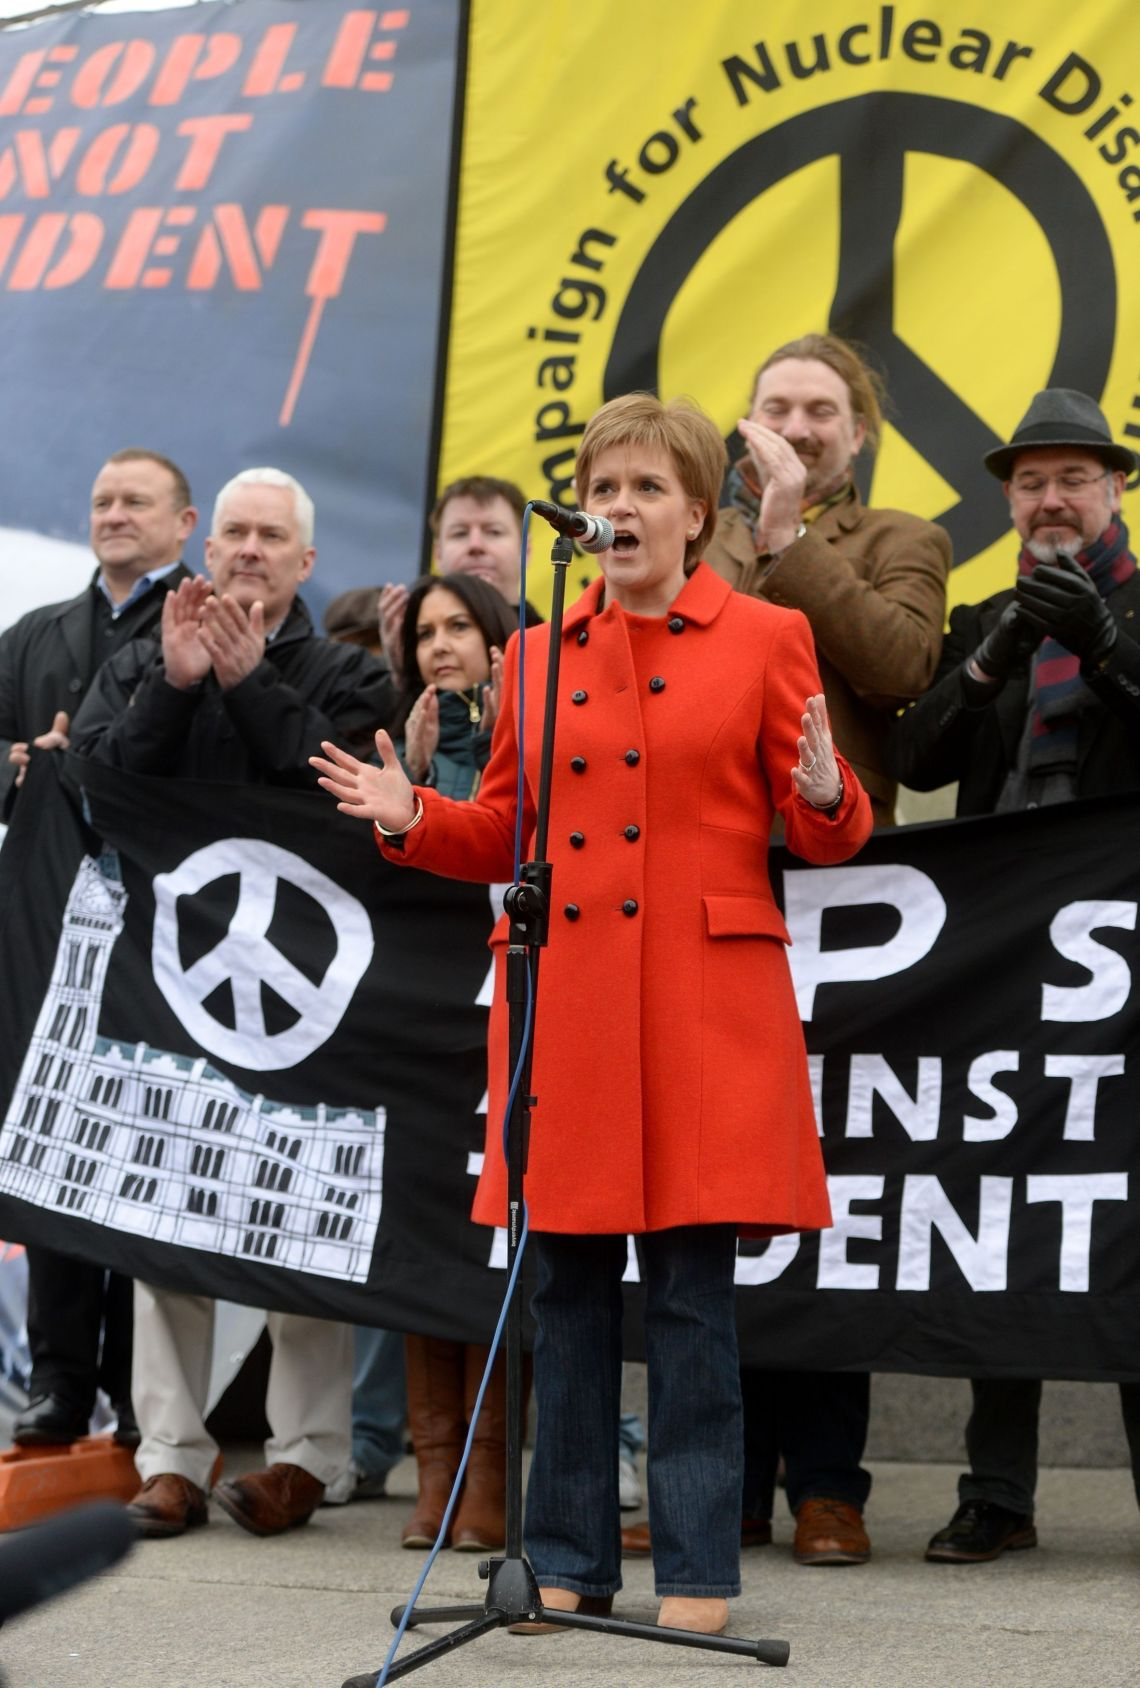 Scottish First Minister Nicola Sturgeon address protesters at a Stop Trident protest rally in Trafalgar Square, London.